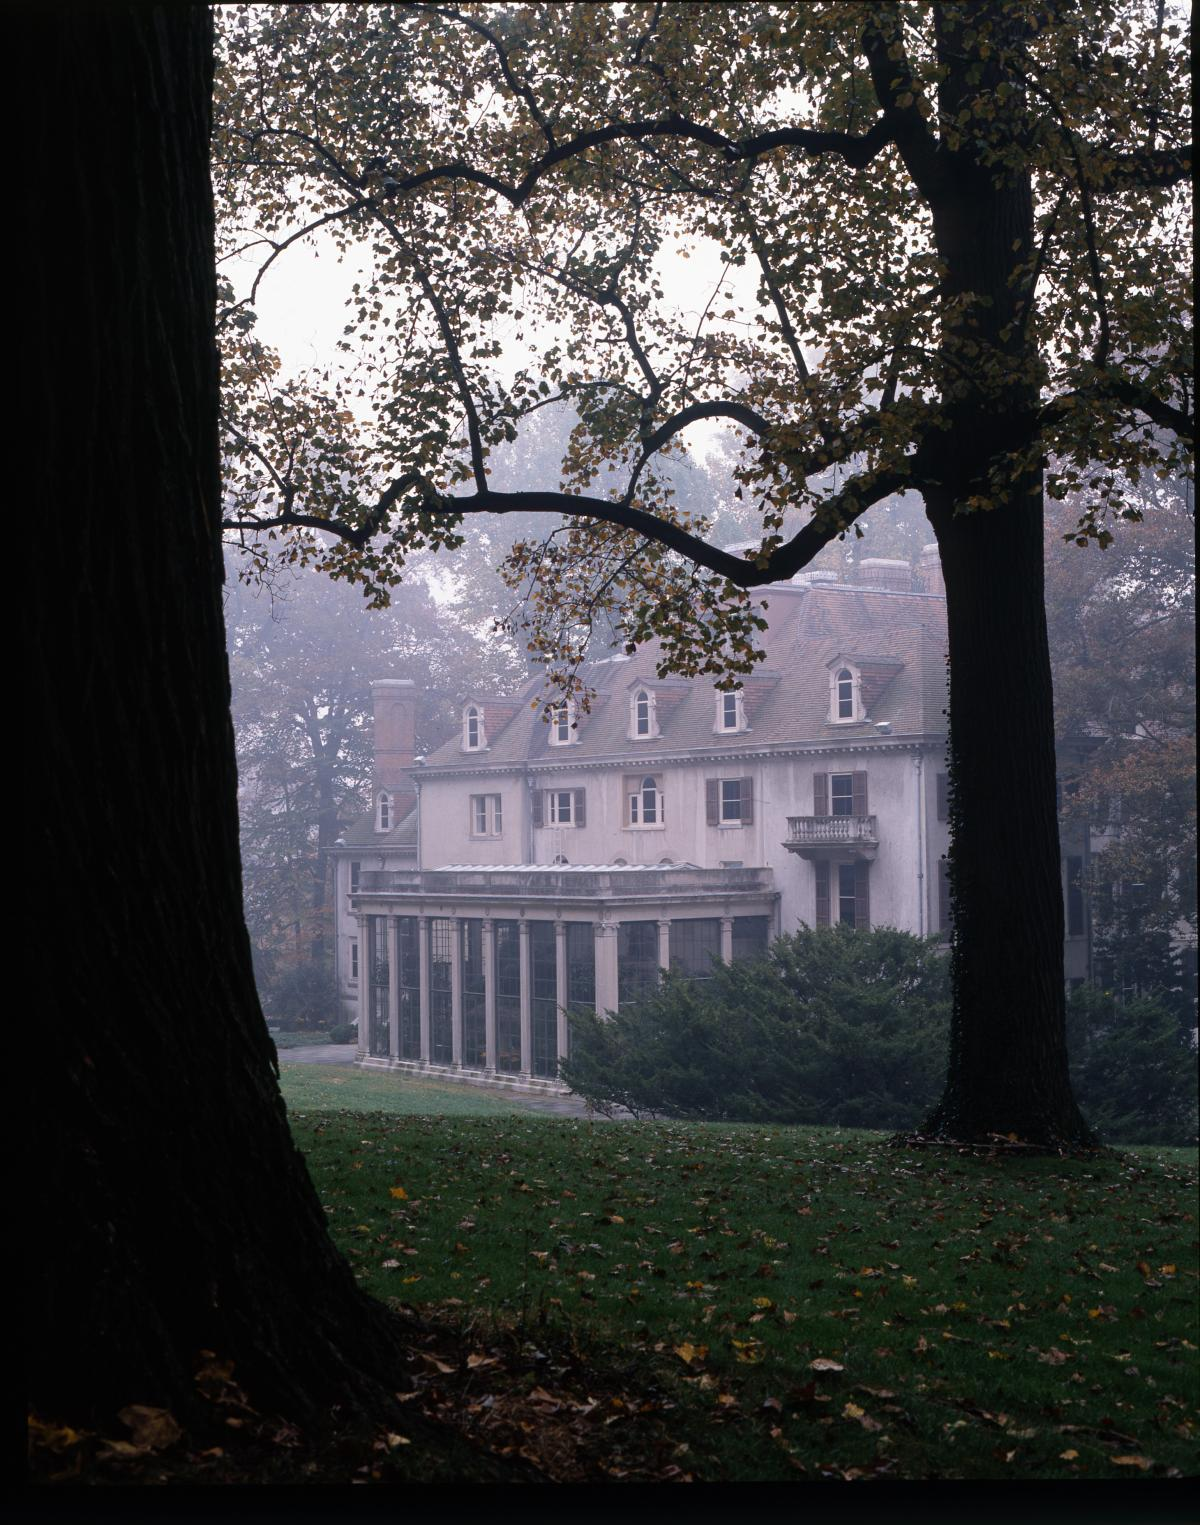 Photograph of a large house, shrouded in slight mist